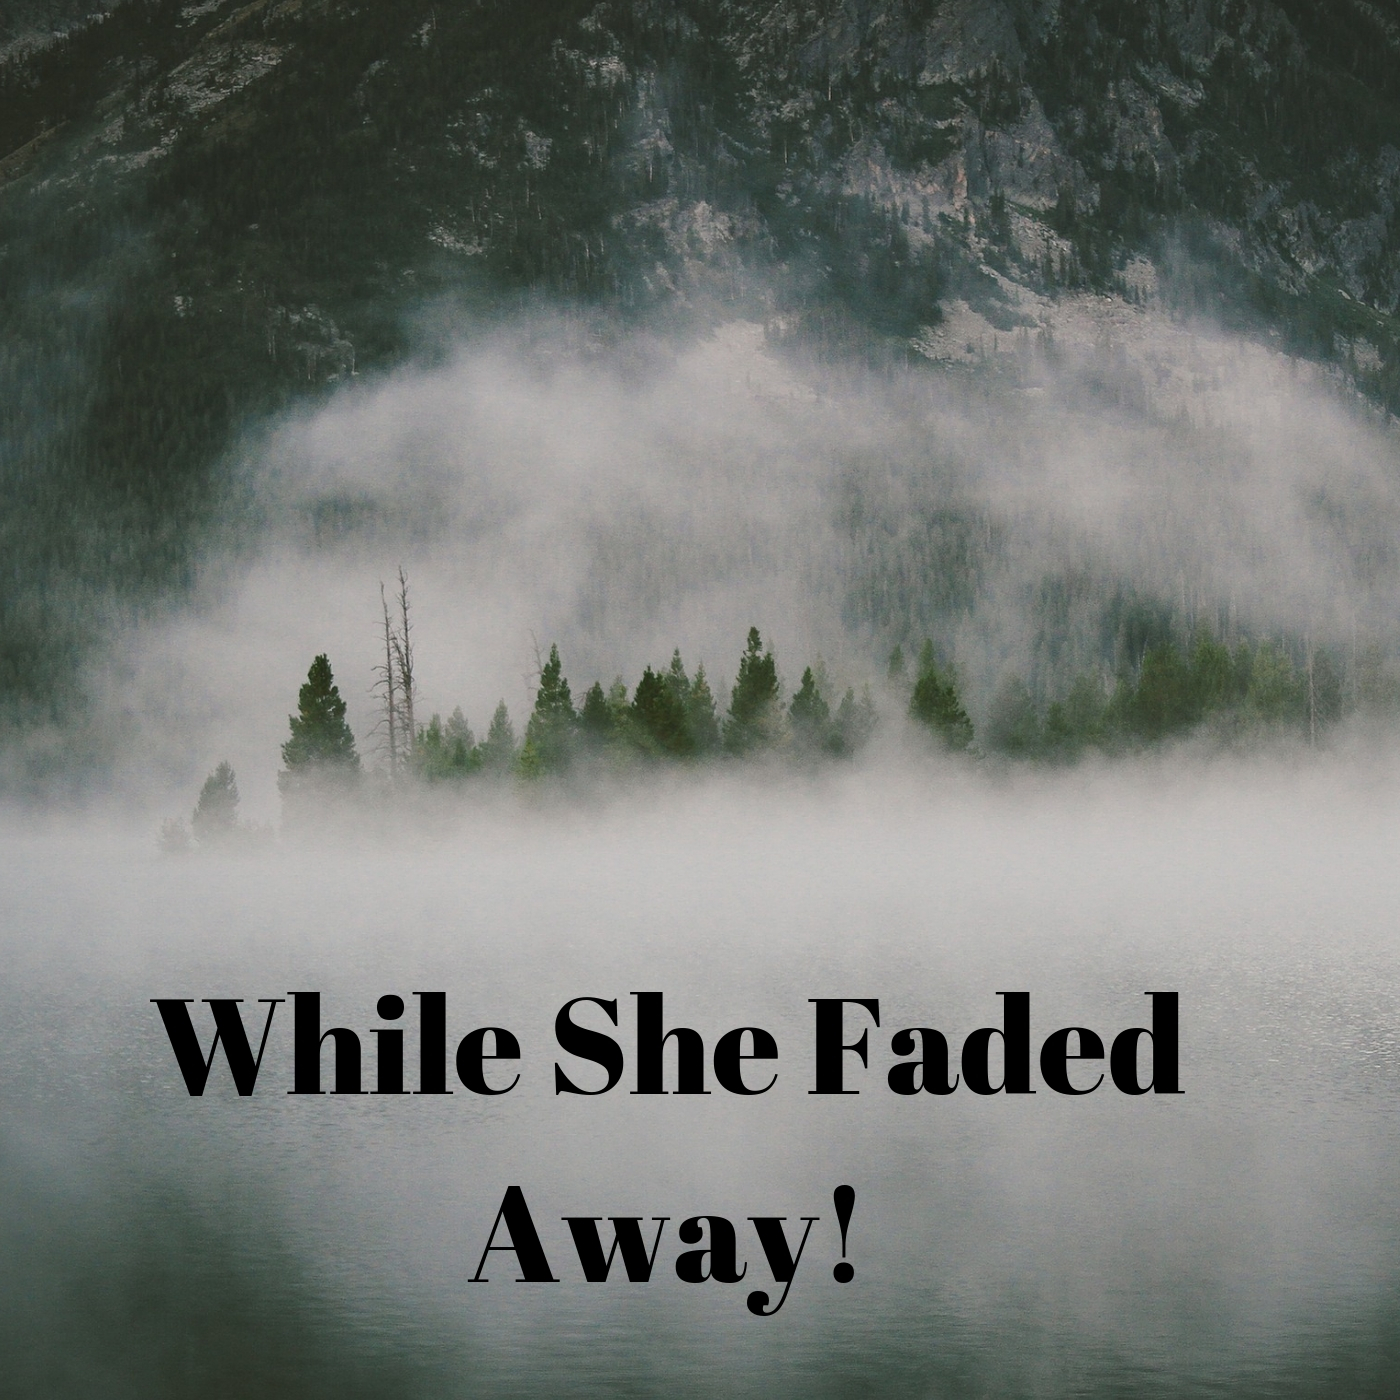 While She Faded Away